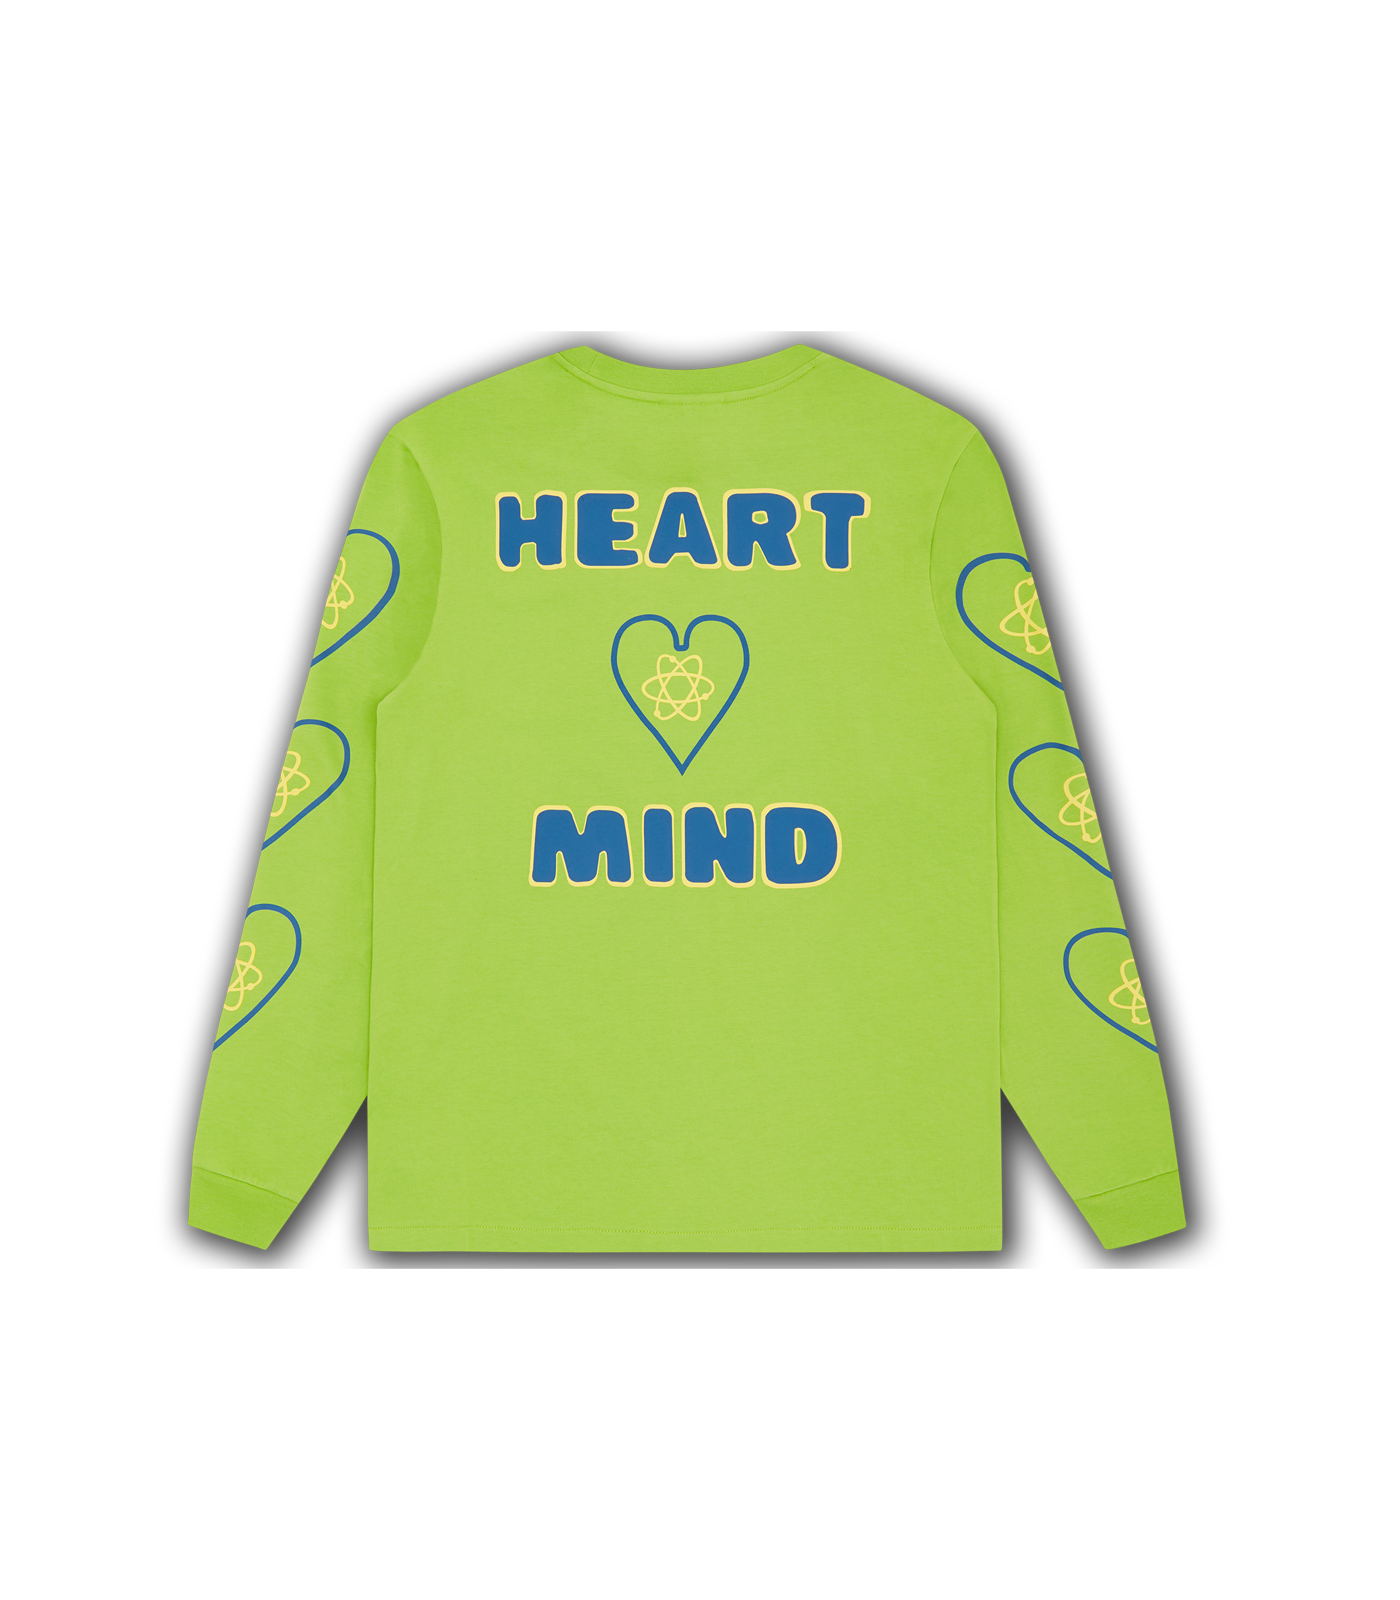 HEART & MIND L/S T-SHIRT - LIME